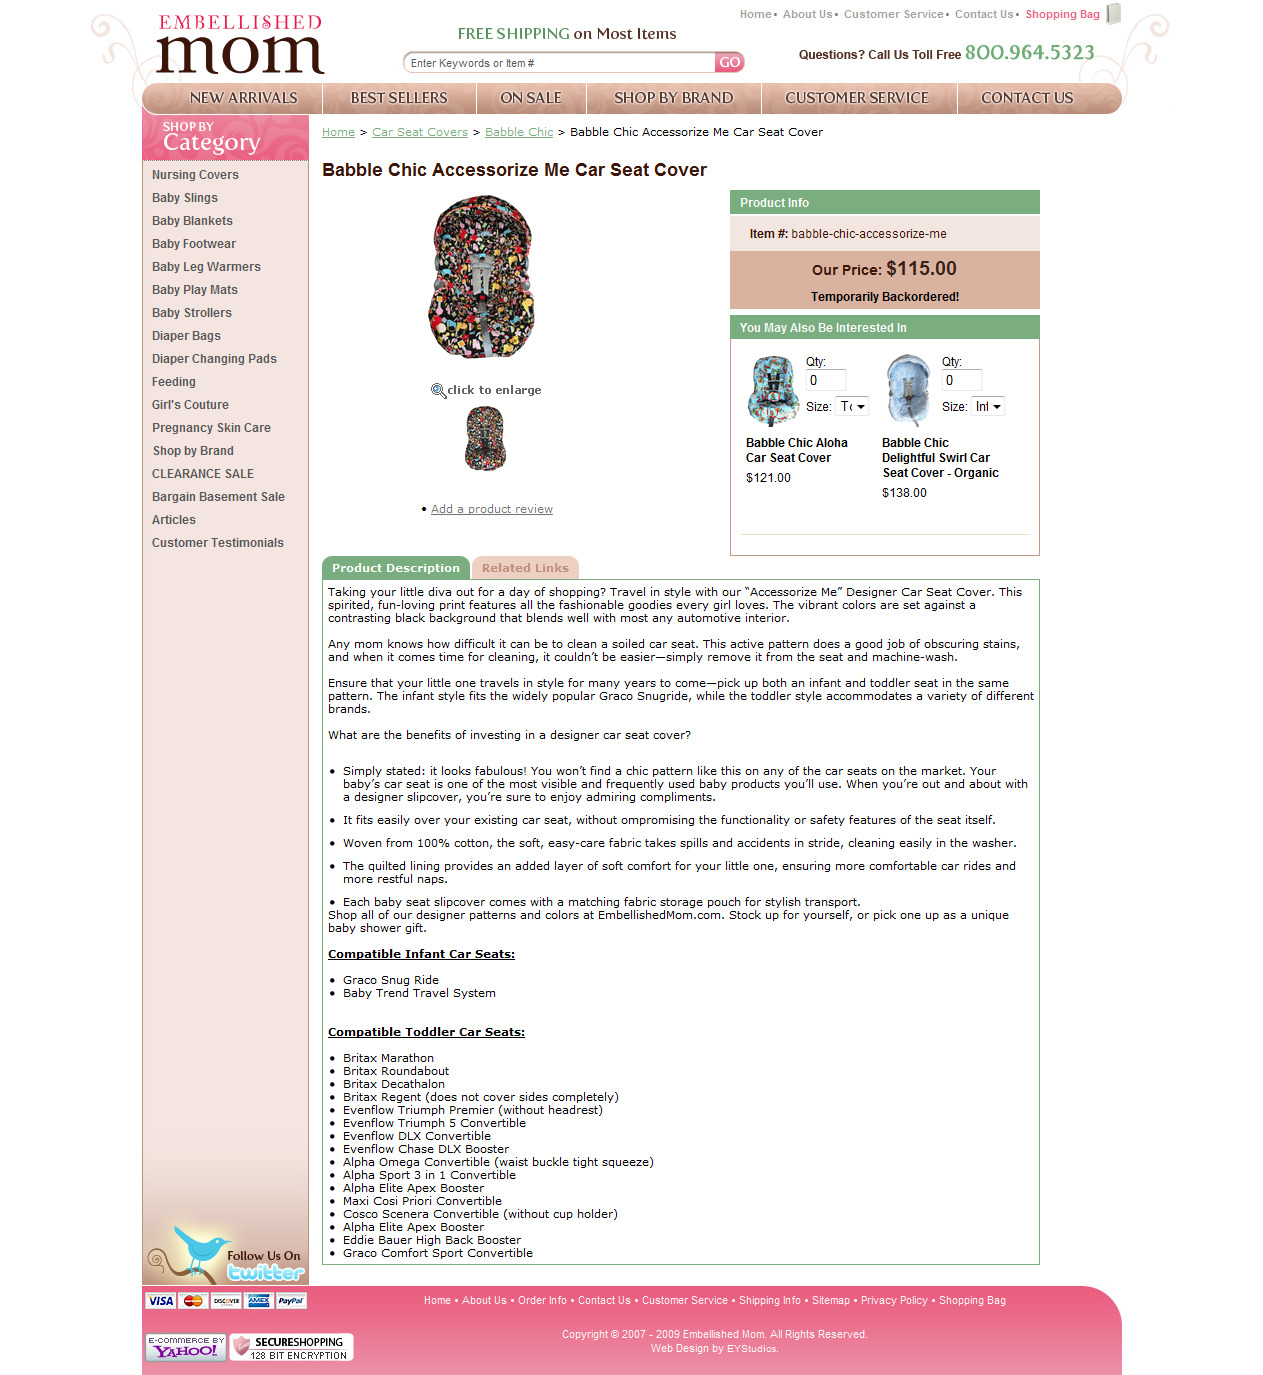 Product Description: Baby/Maternity